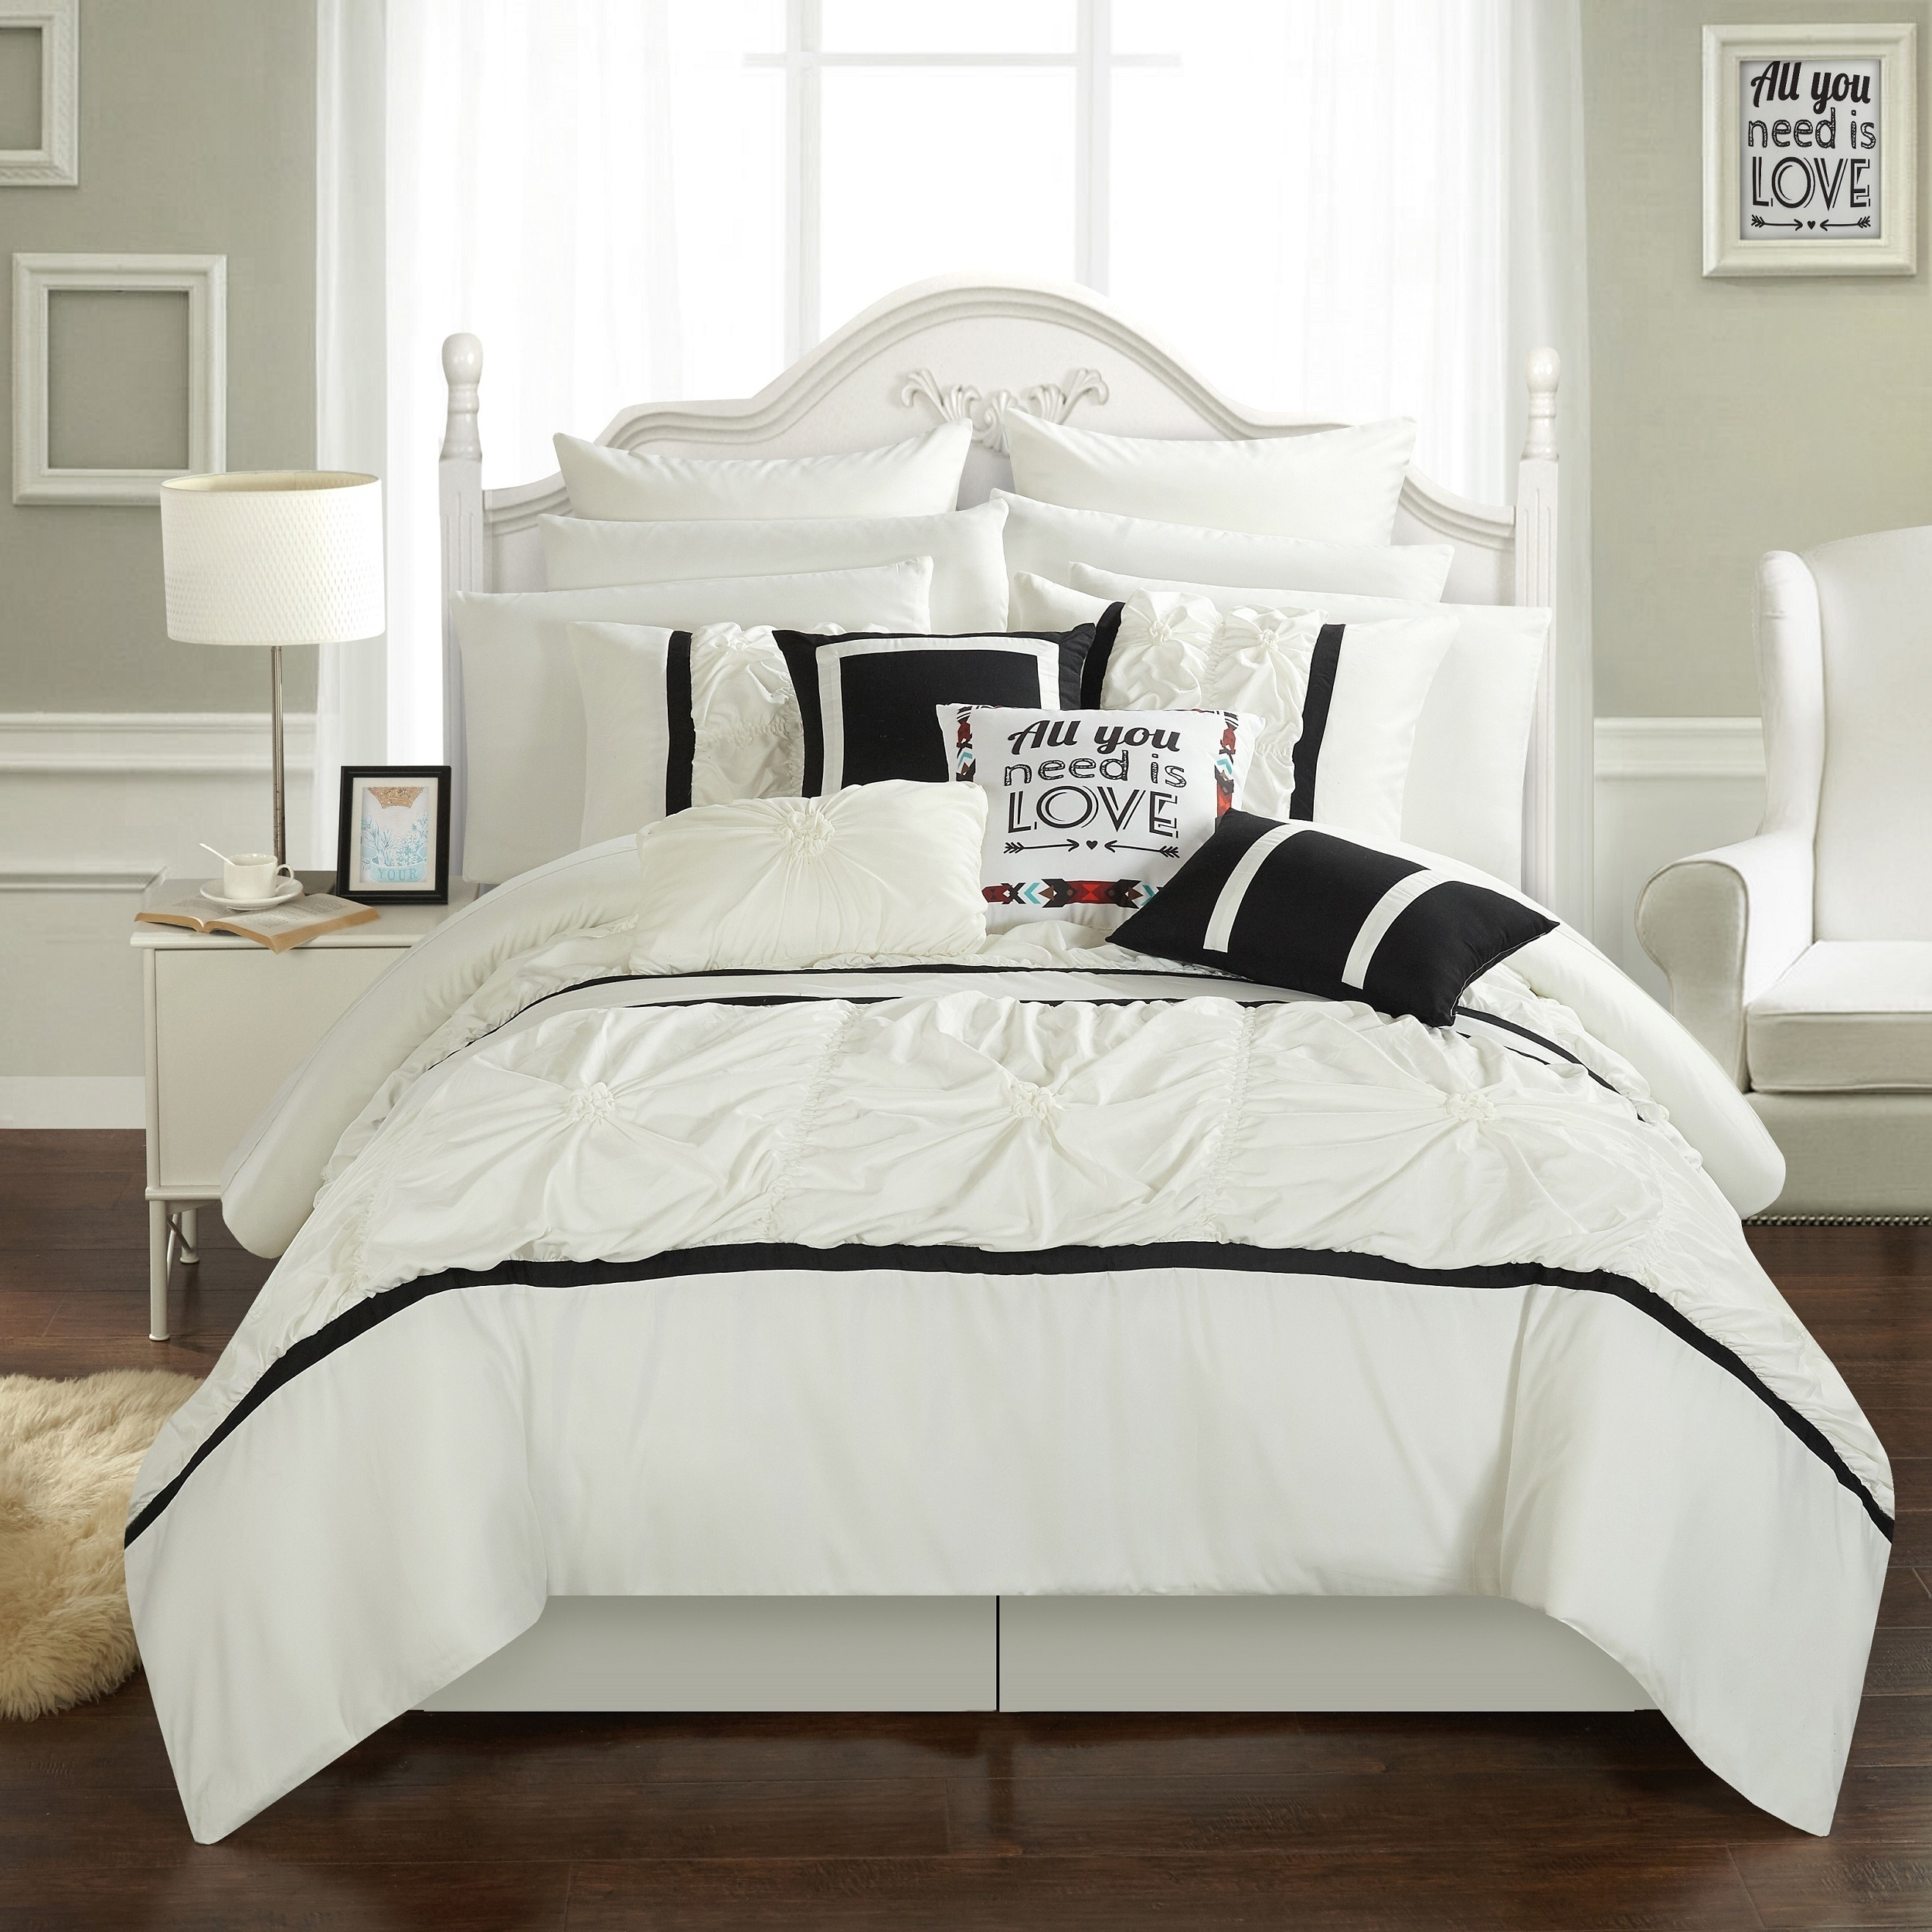 Dorable Chic Home Design Comforter Sets Image Collection - Home ...